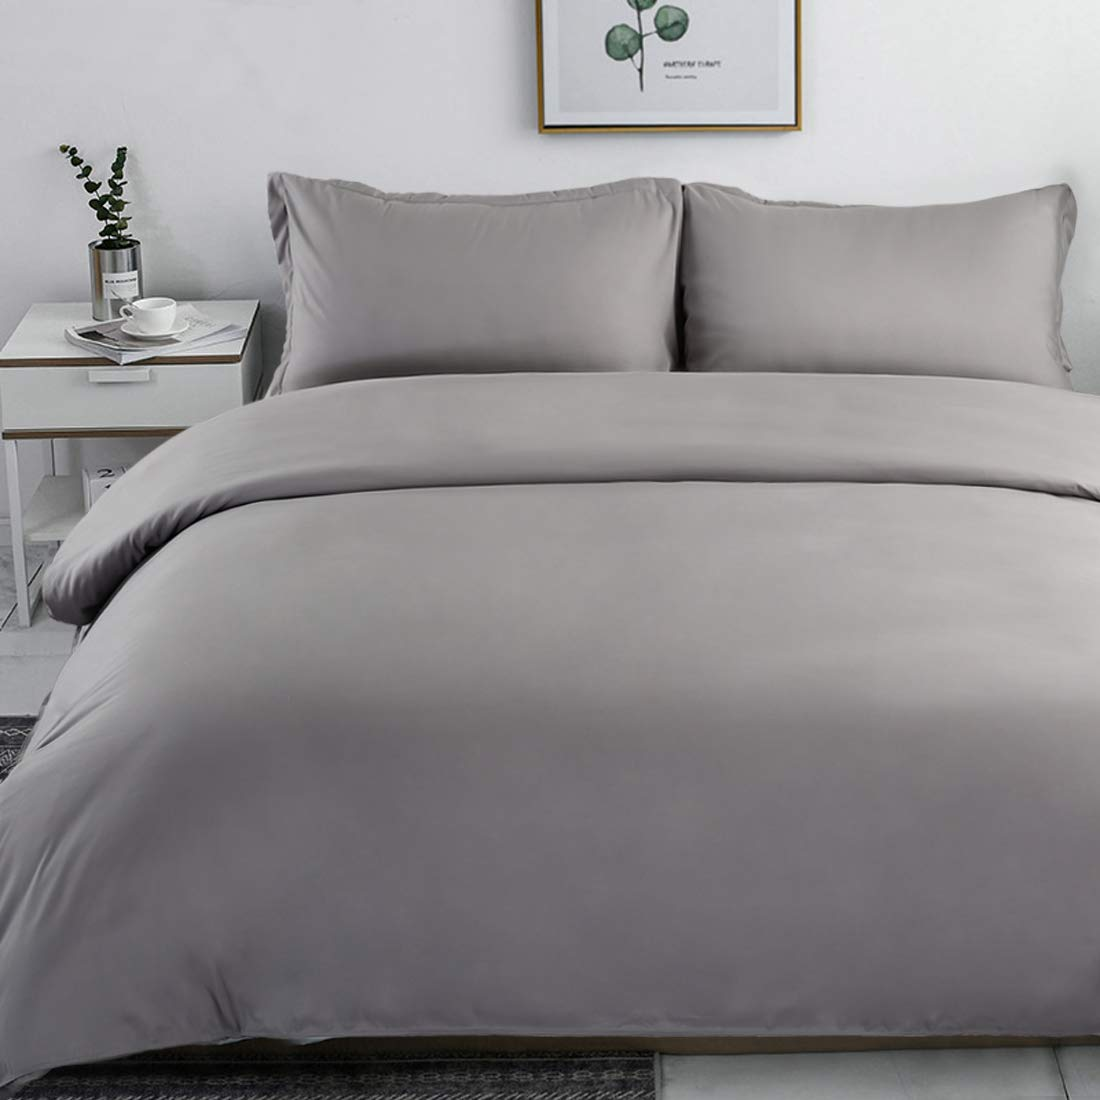 INGALIK Bedding 3 Piece Duvet Cover Set Twin Size with Zipper Closure Ultra Soft Breathable 100/% Washed Microfiber Hotel Luxury Solid Color Collection 3pc Grey 1 Duvet Cover + 1 Pillow Shams